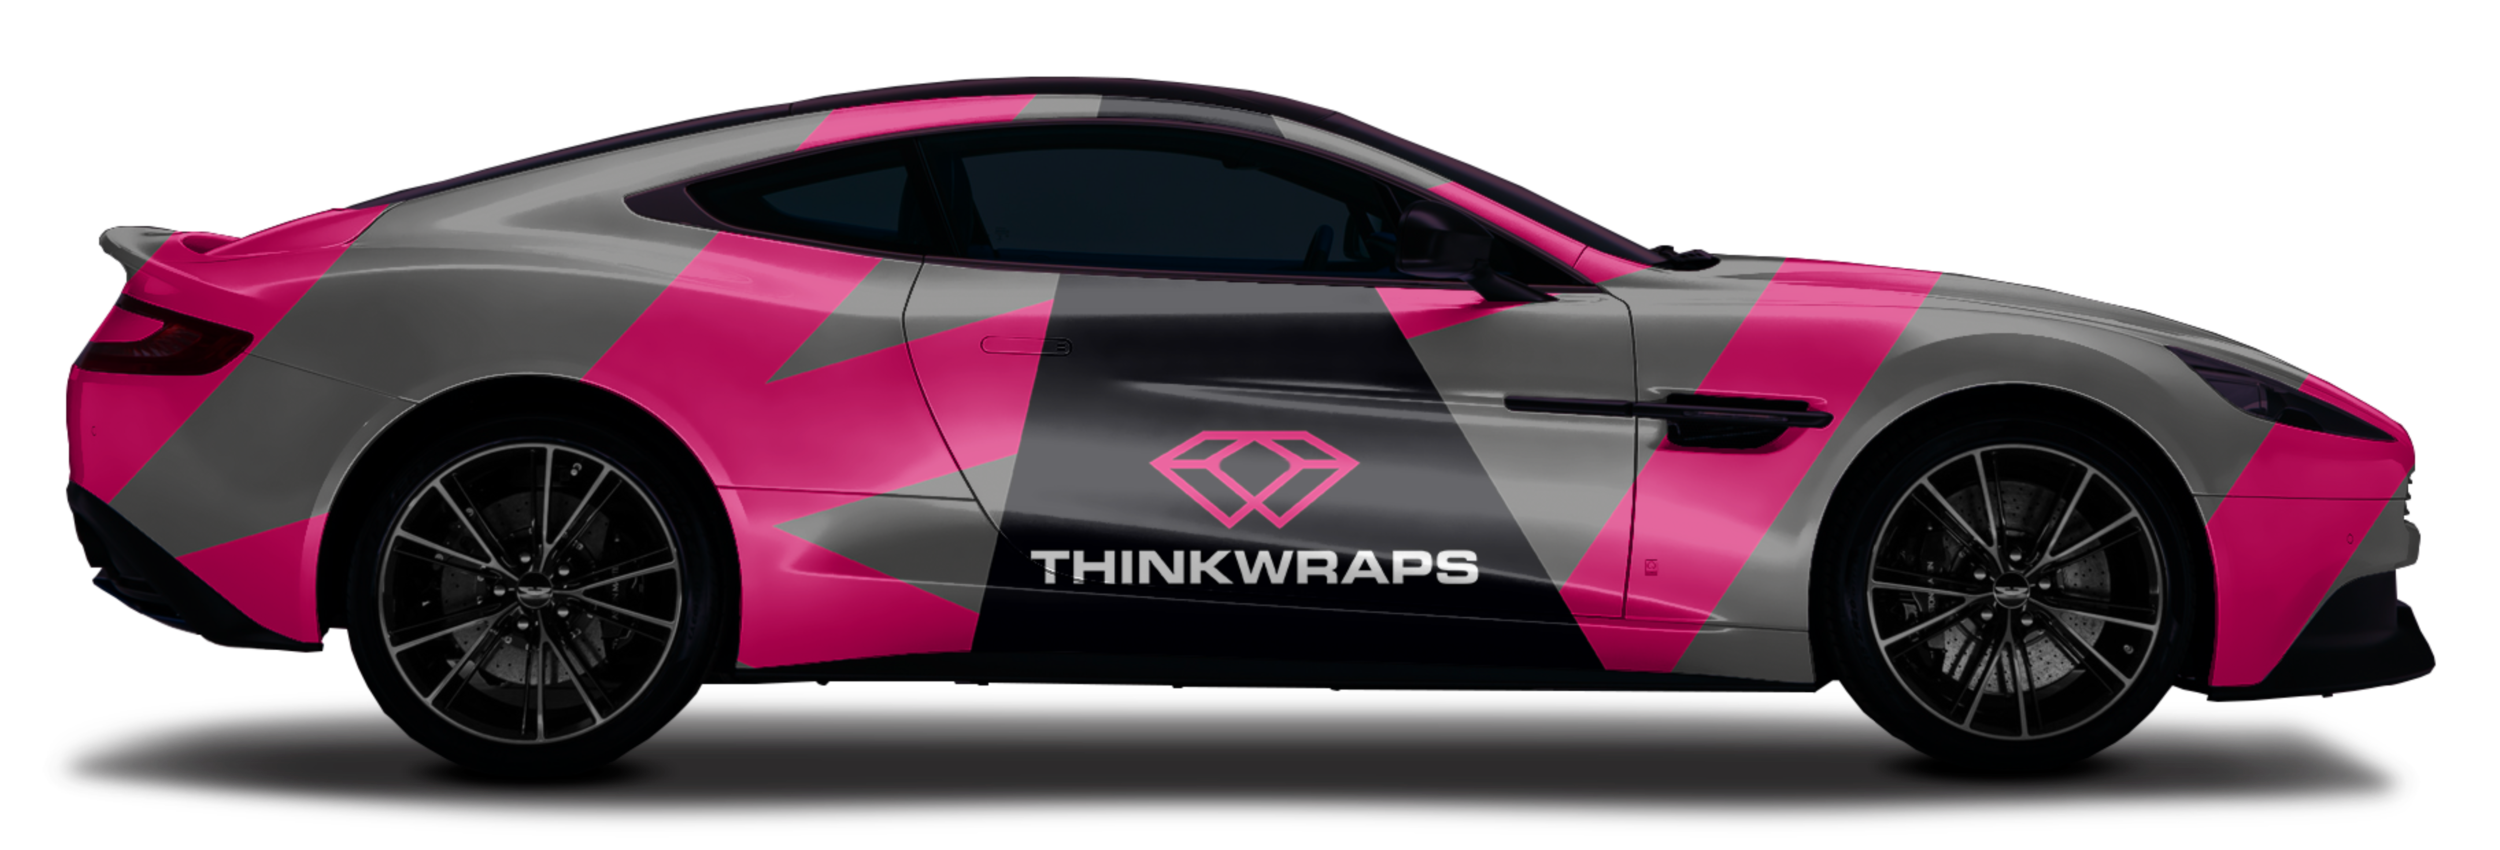 Think Wraps.png